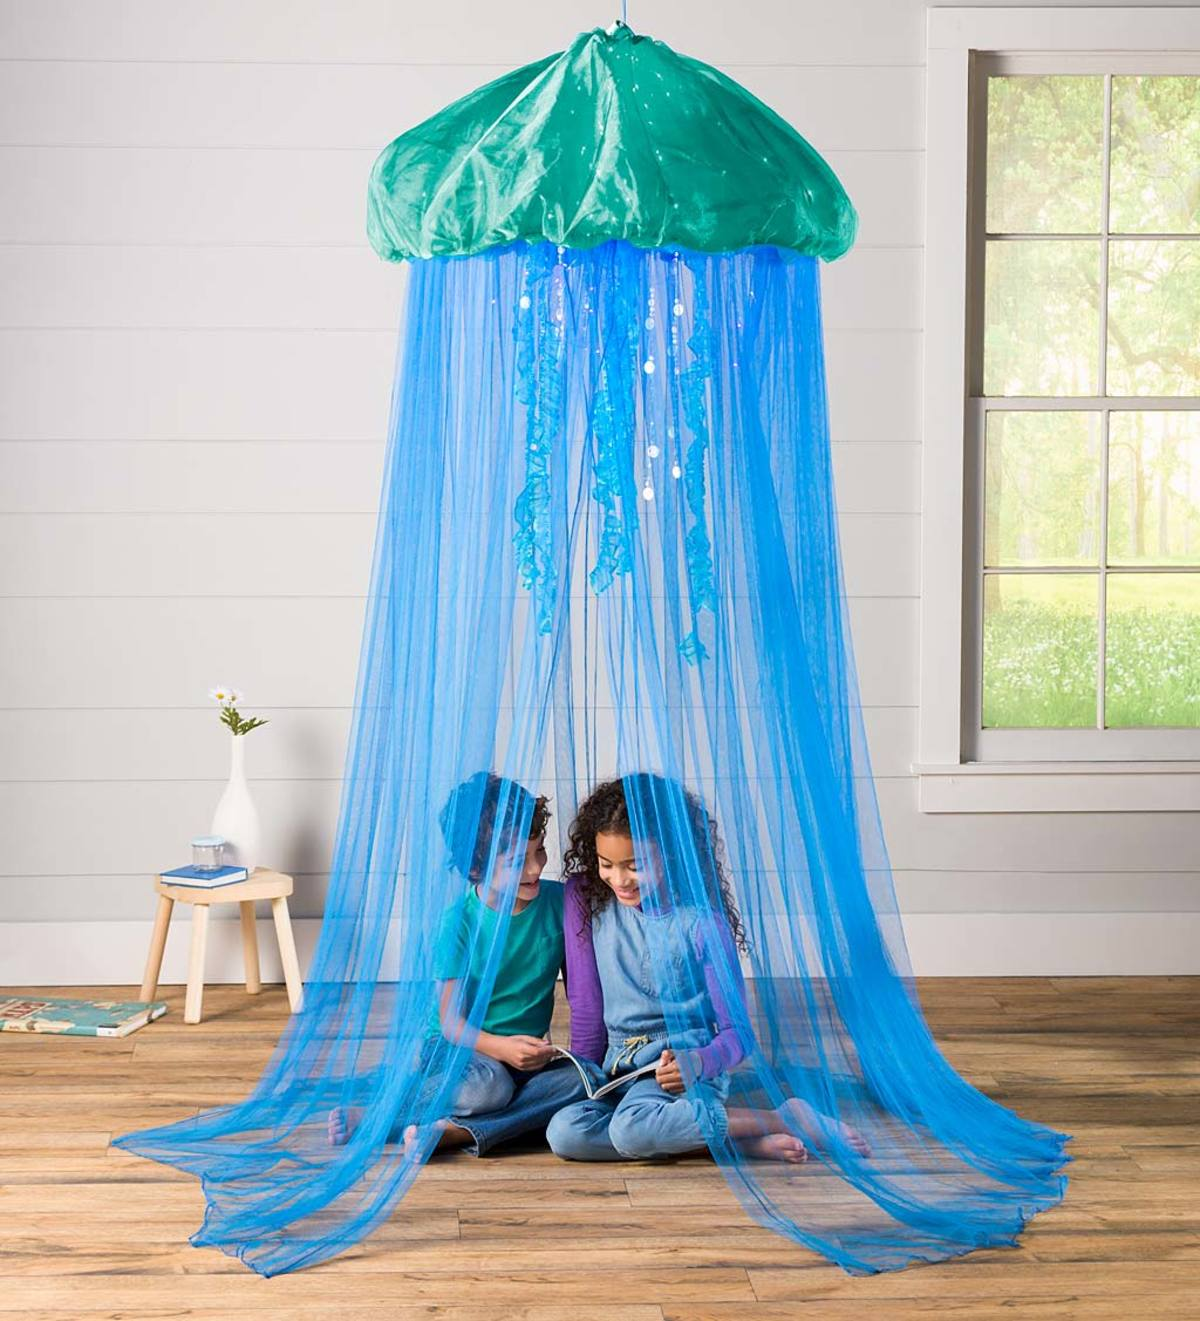 Aquaglow Jellyfish Hideaway Bed Canopy Excluded From